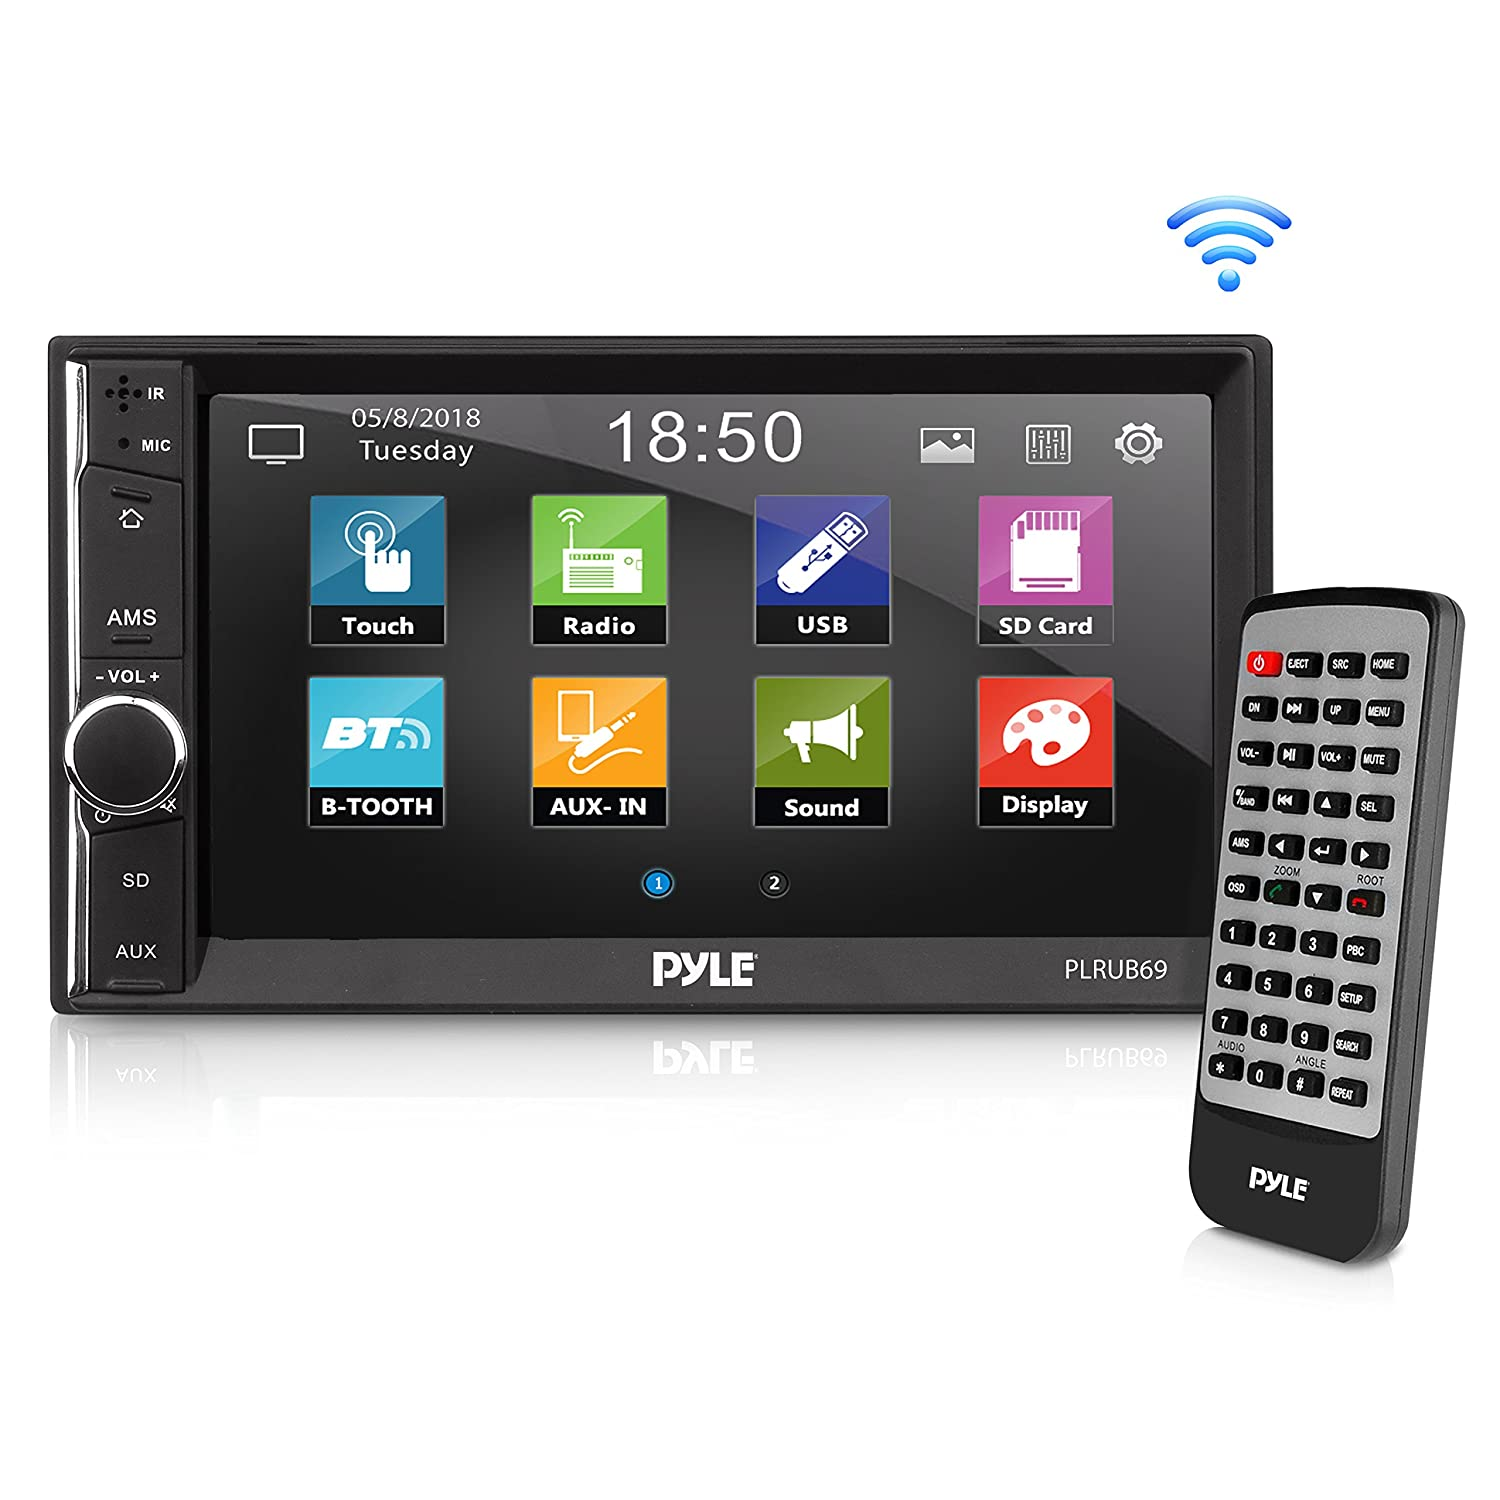 Pyle Car Audio Radio Receiver | Double Din Car Stereo | 6.5' Touchscreen | Bluetooth Audio Receiver | Wireless Streaming | Microphone | Handsfree | USB/SD Memory Card | AUX/MP3 Input | (PLRUB69) Sound Around